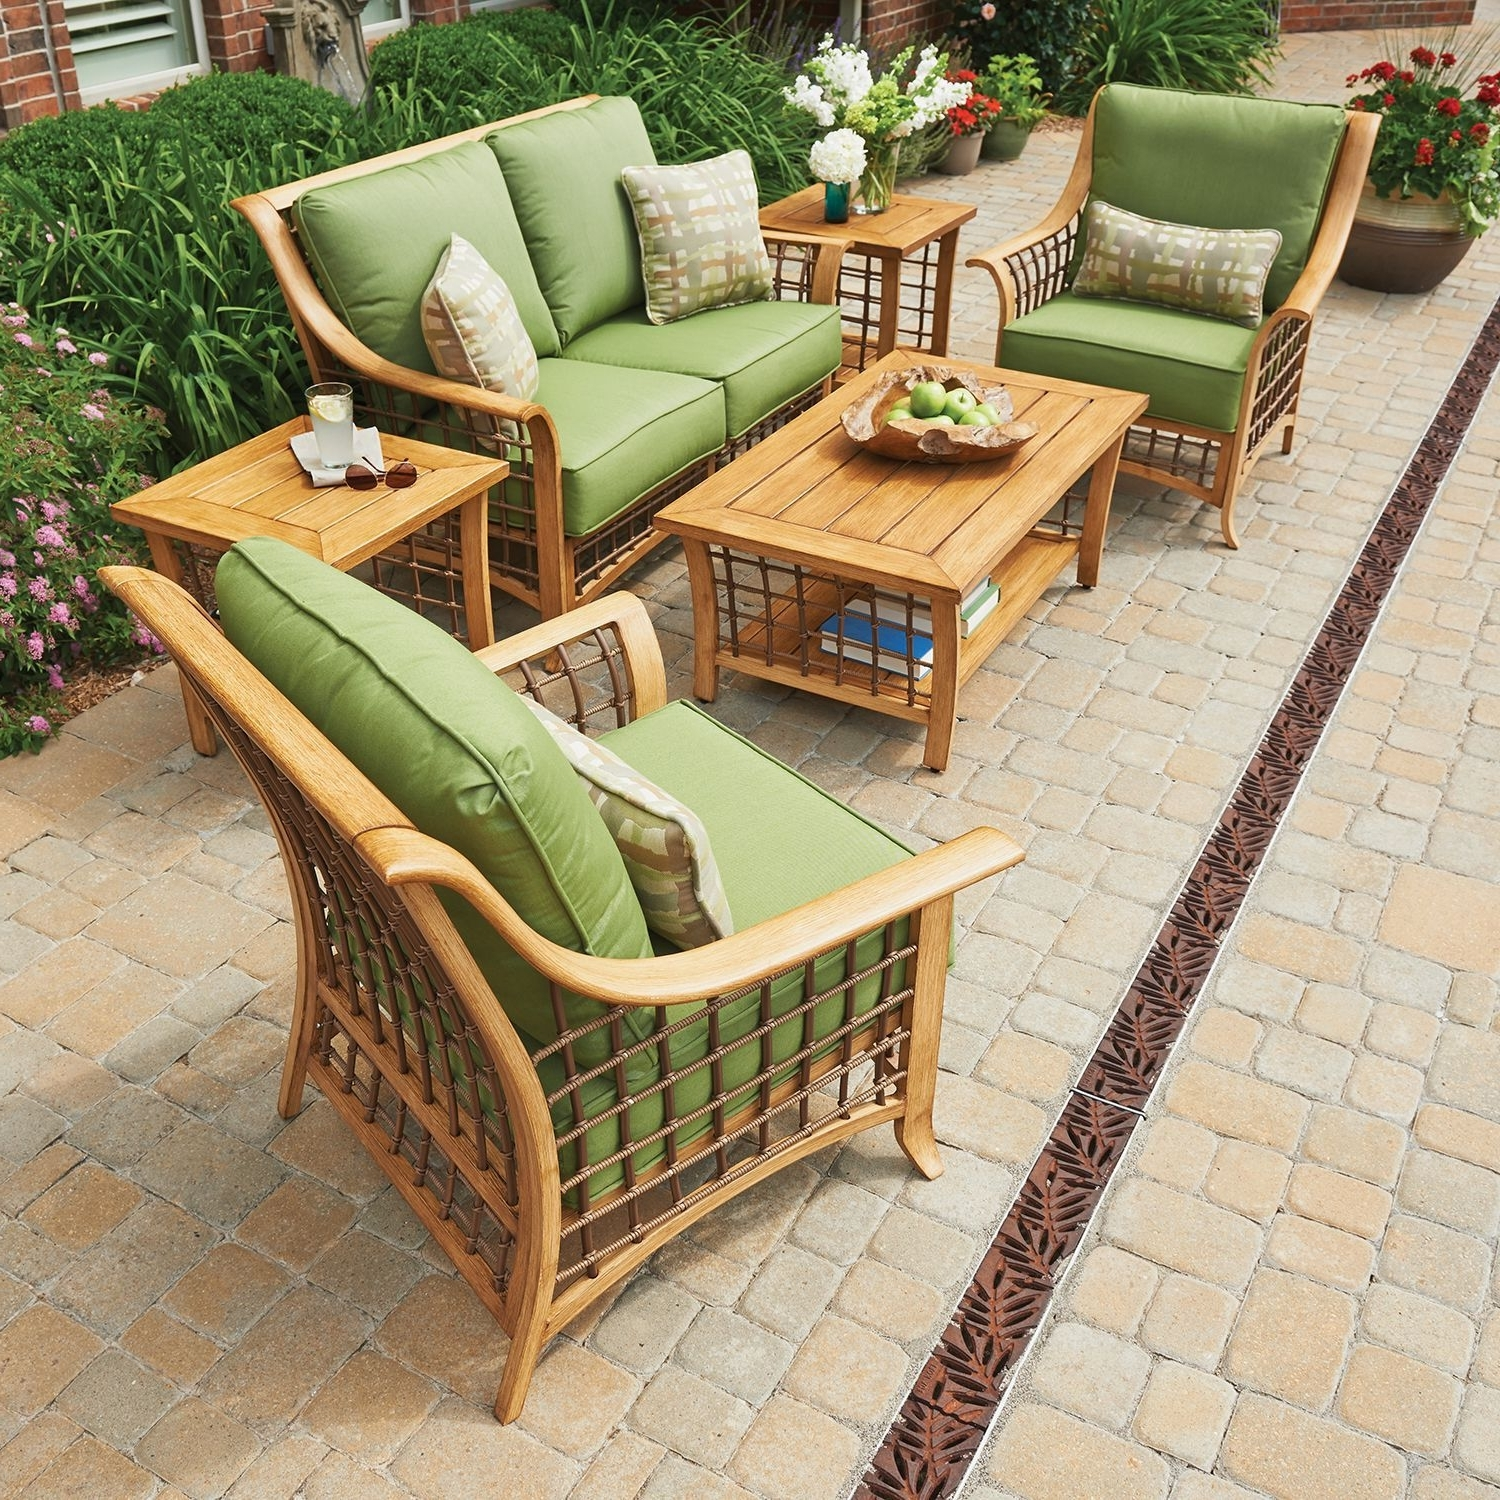 3 Season Porch Throughout Patio Conversation Sets At Sam's Club (View 2 of 15)